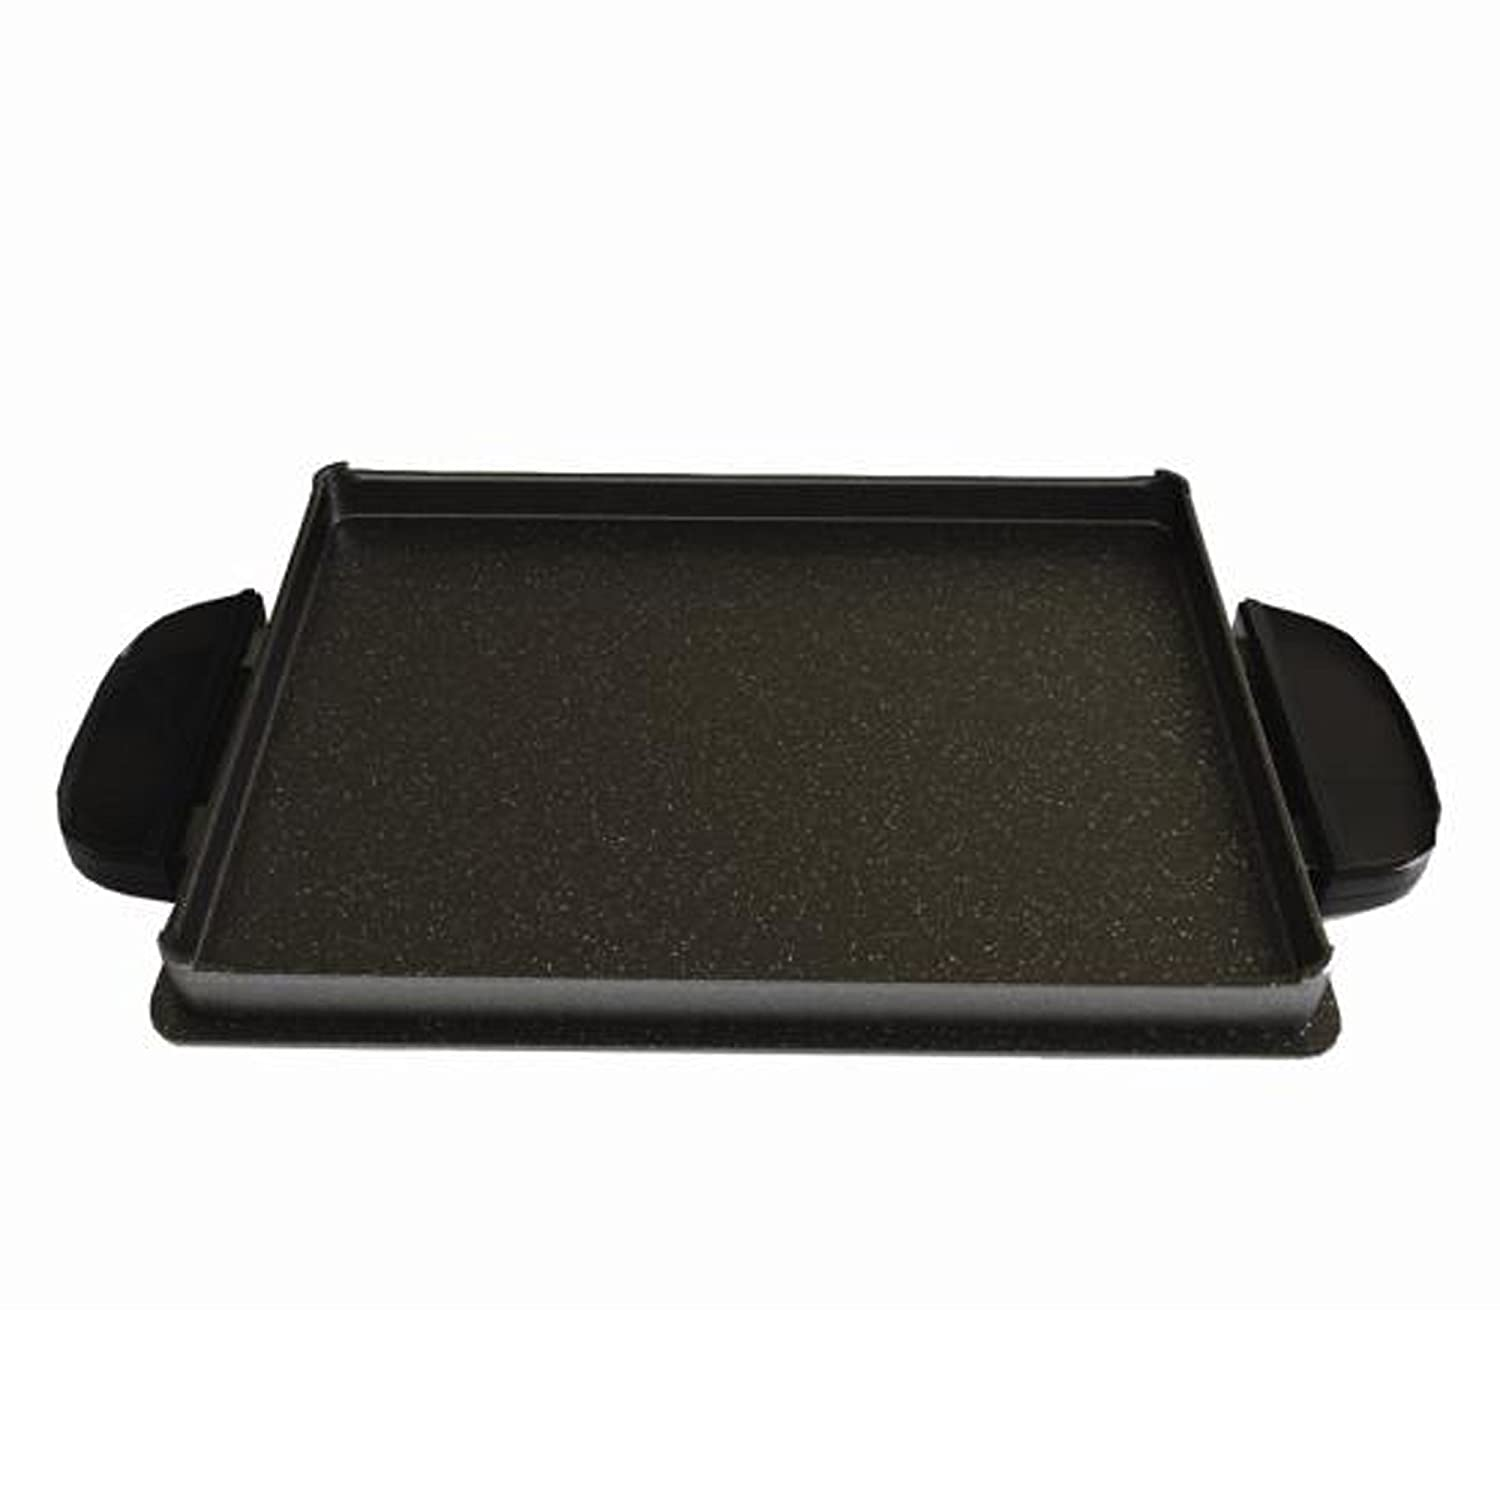 George Foreman Evolve Grill System Griddle Plate, GFP84GP